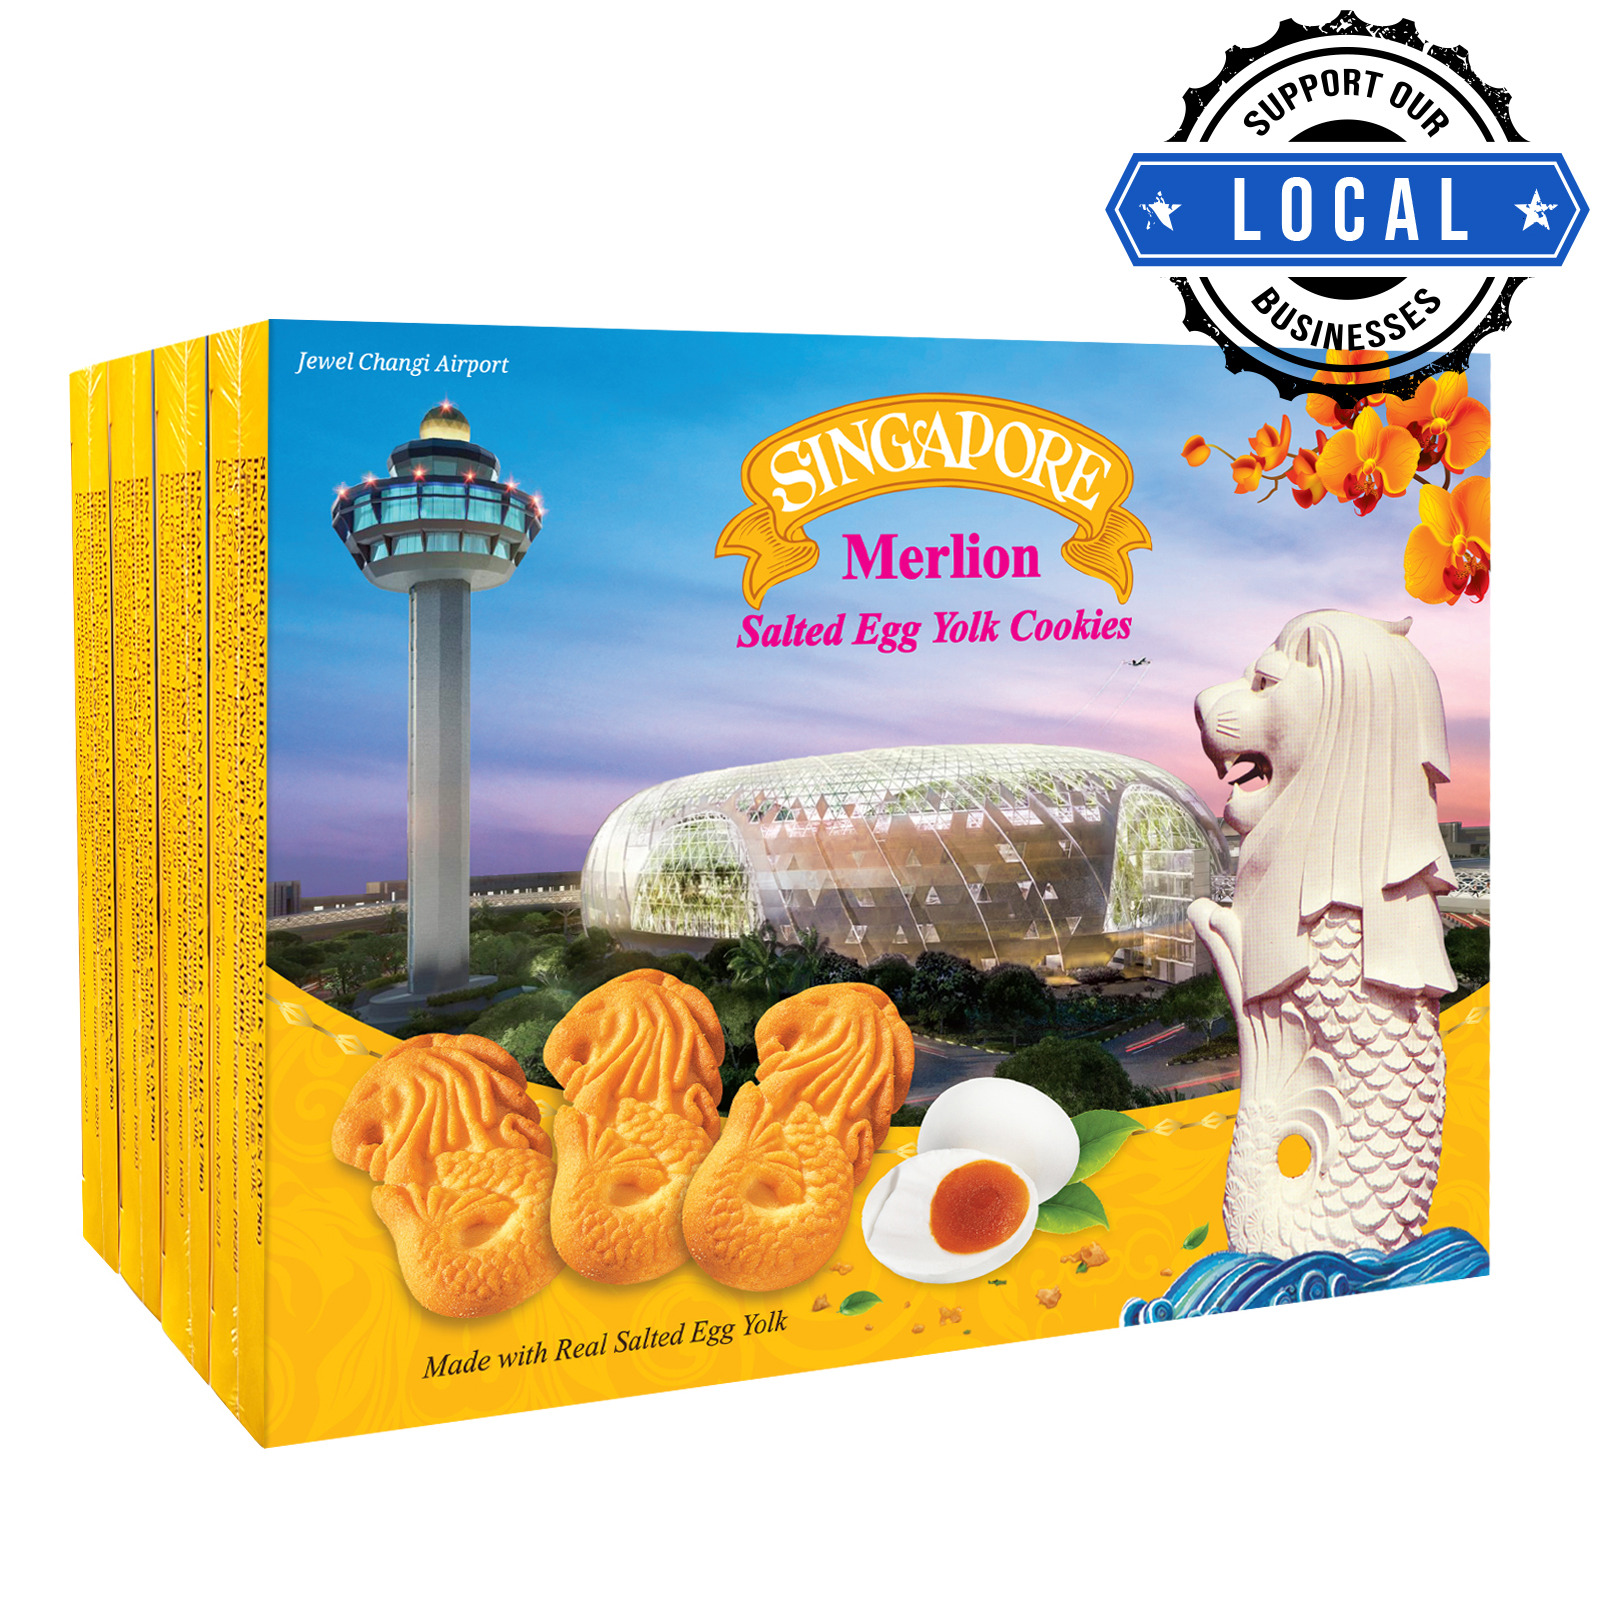 Manly Singapore Merlion Butter Cookies - Salted Egg Yolk